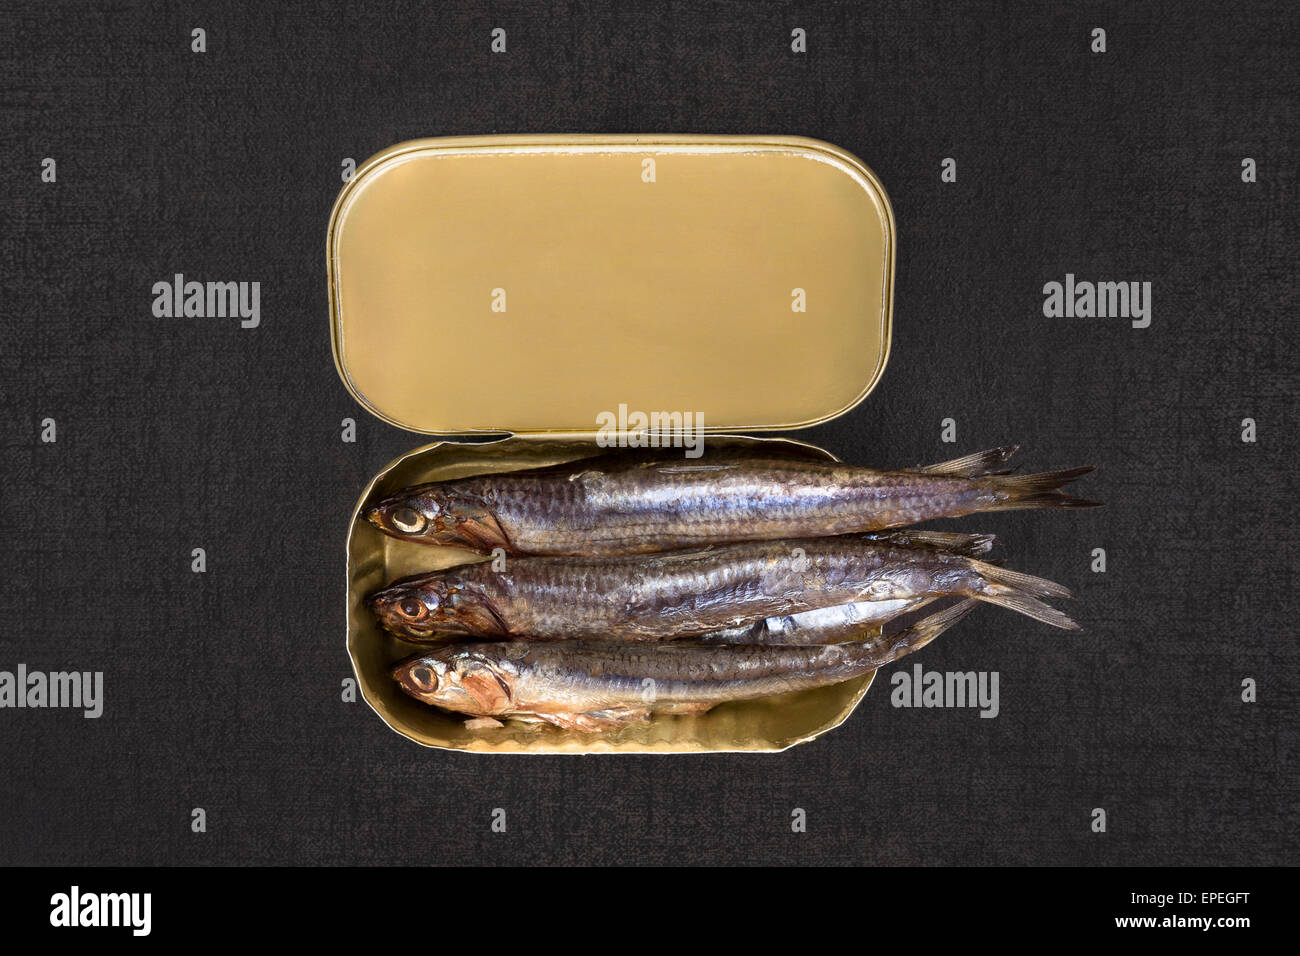 Open can with sardines isolated on black textured background, top view. Culinary seafood eating. - Stock Image